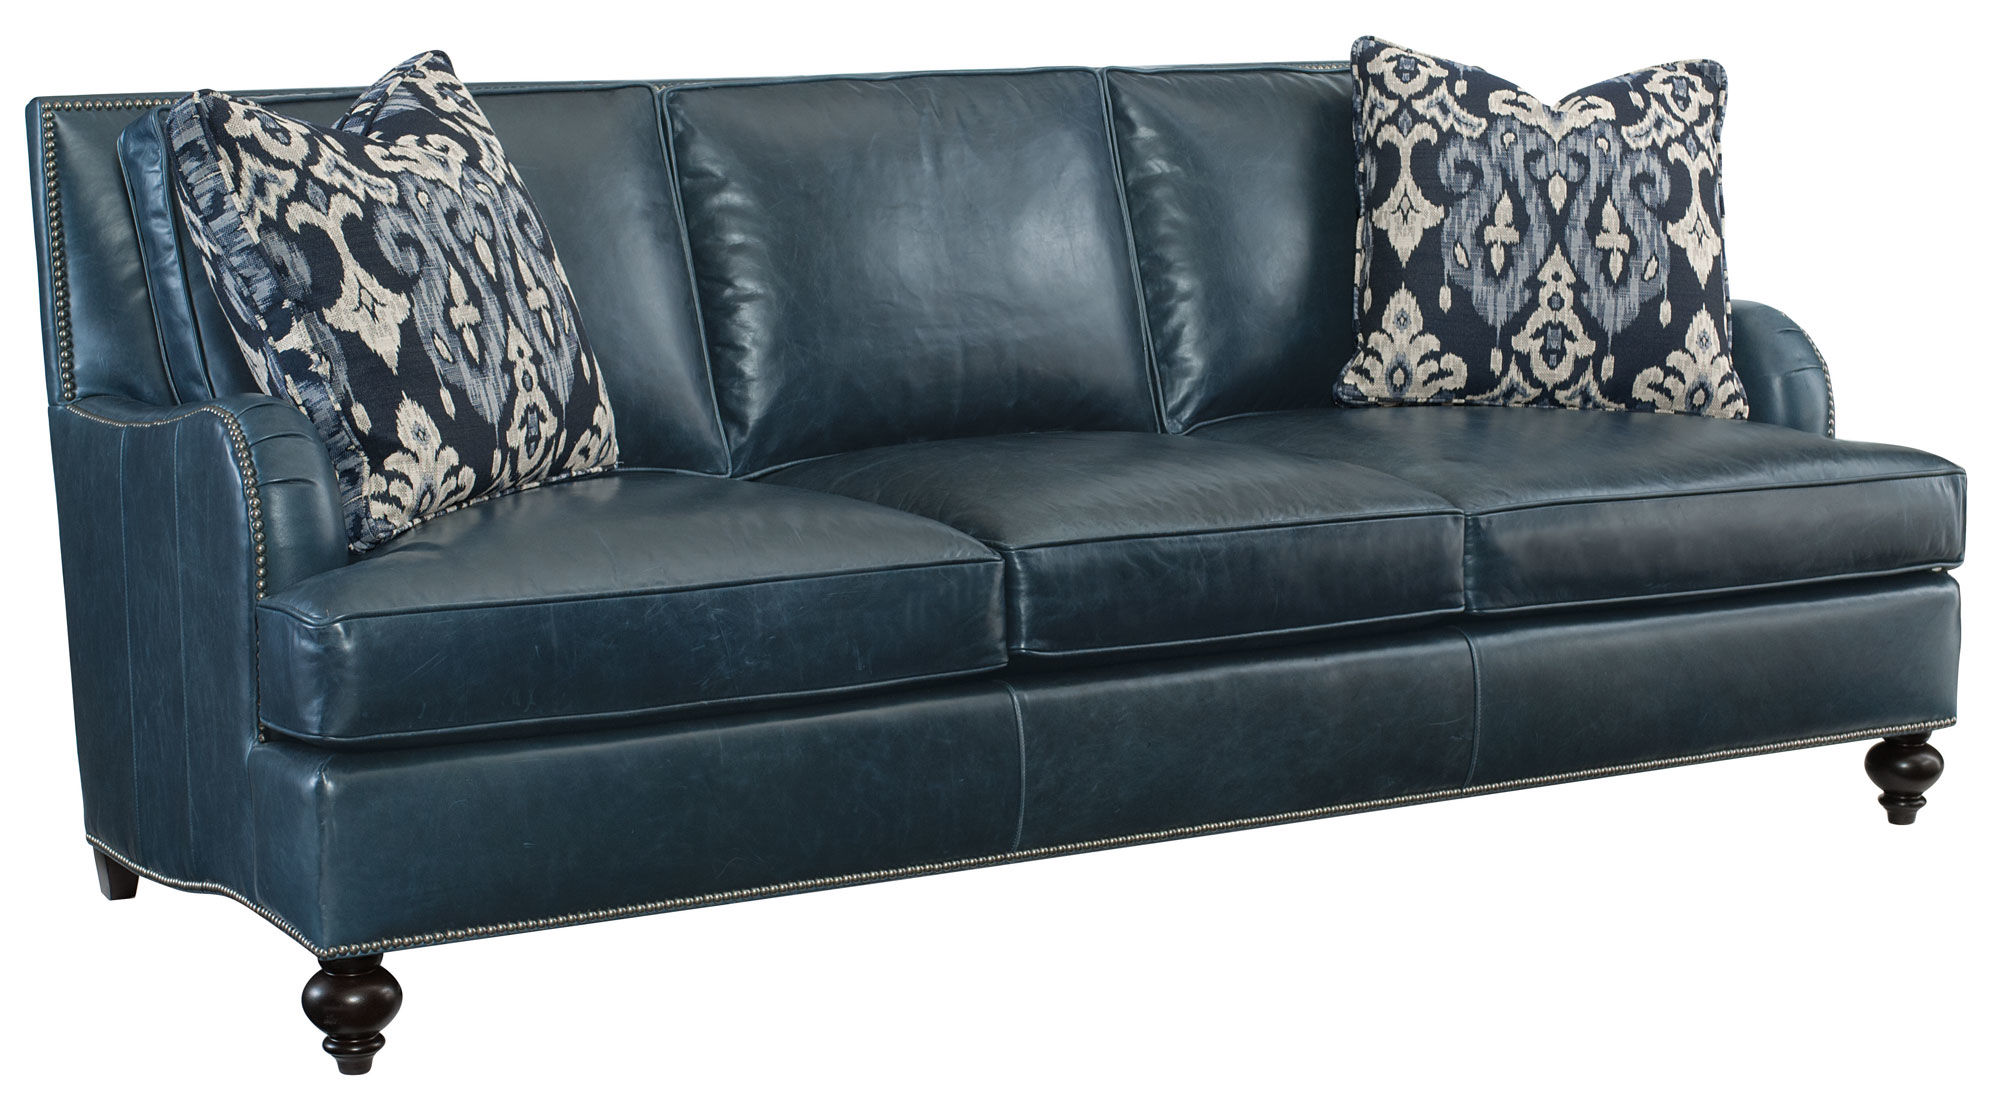 new brown sectional sofas photo-Modern Brown Sectional sofas Wallpaper